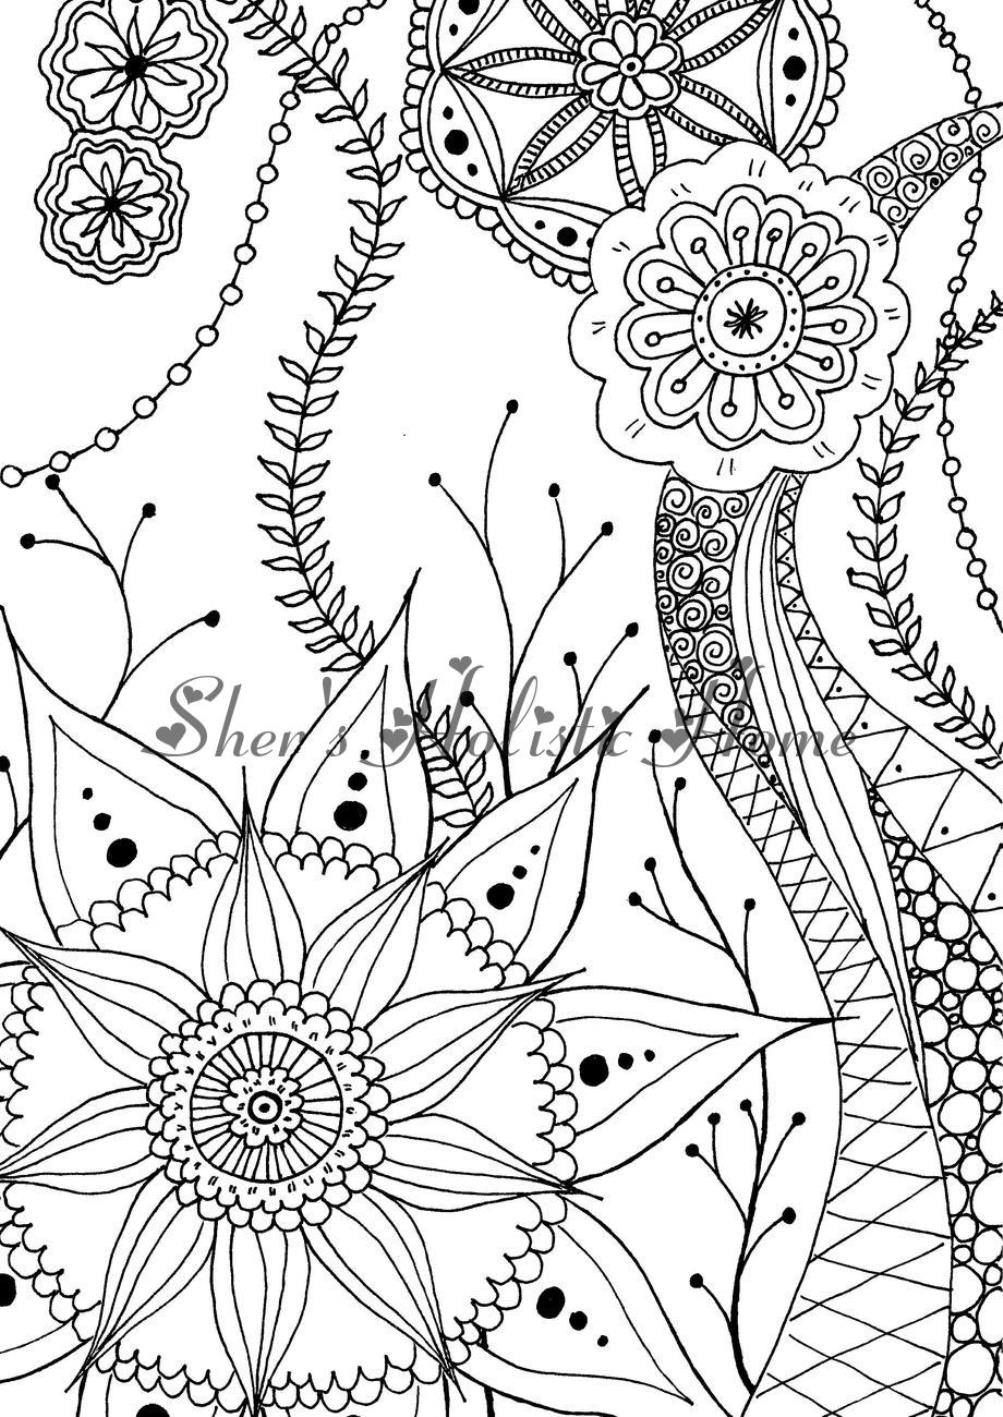 Abstract Art Coloring Pages - monesmapyrene.com | 1417x1003